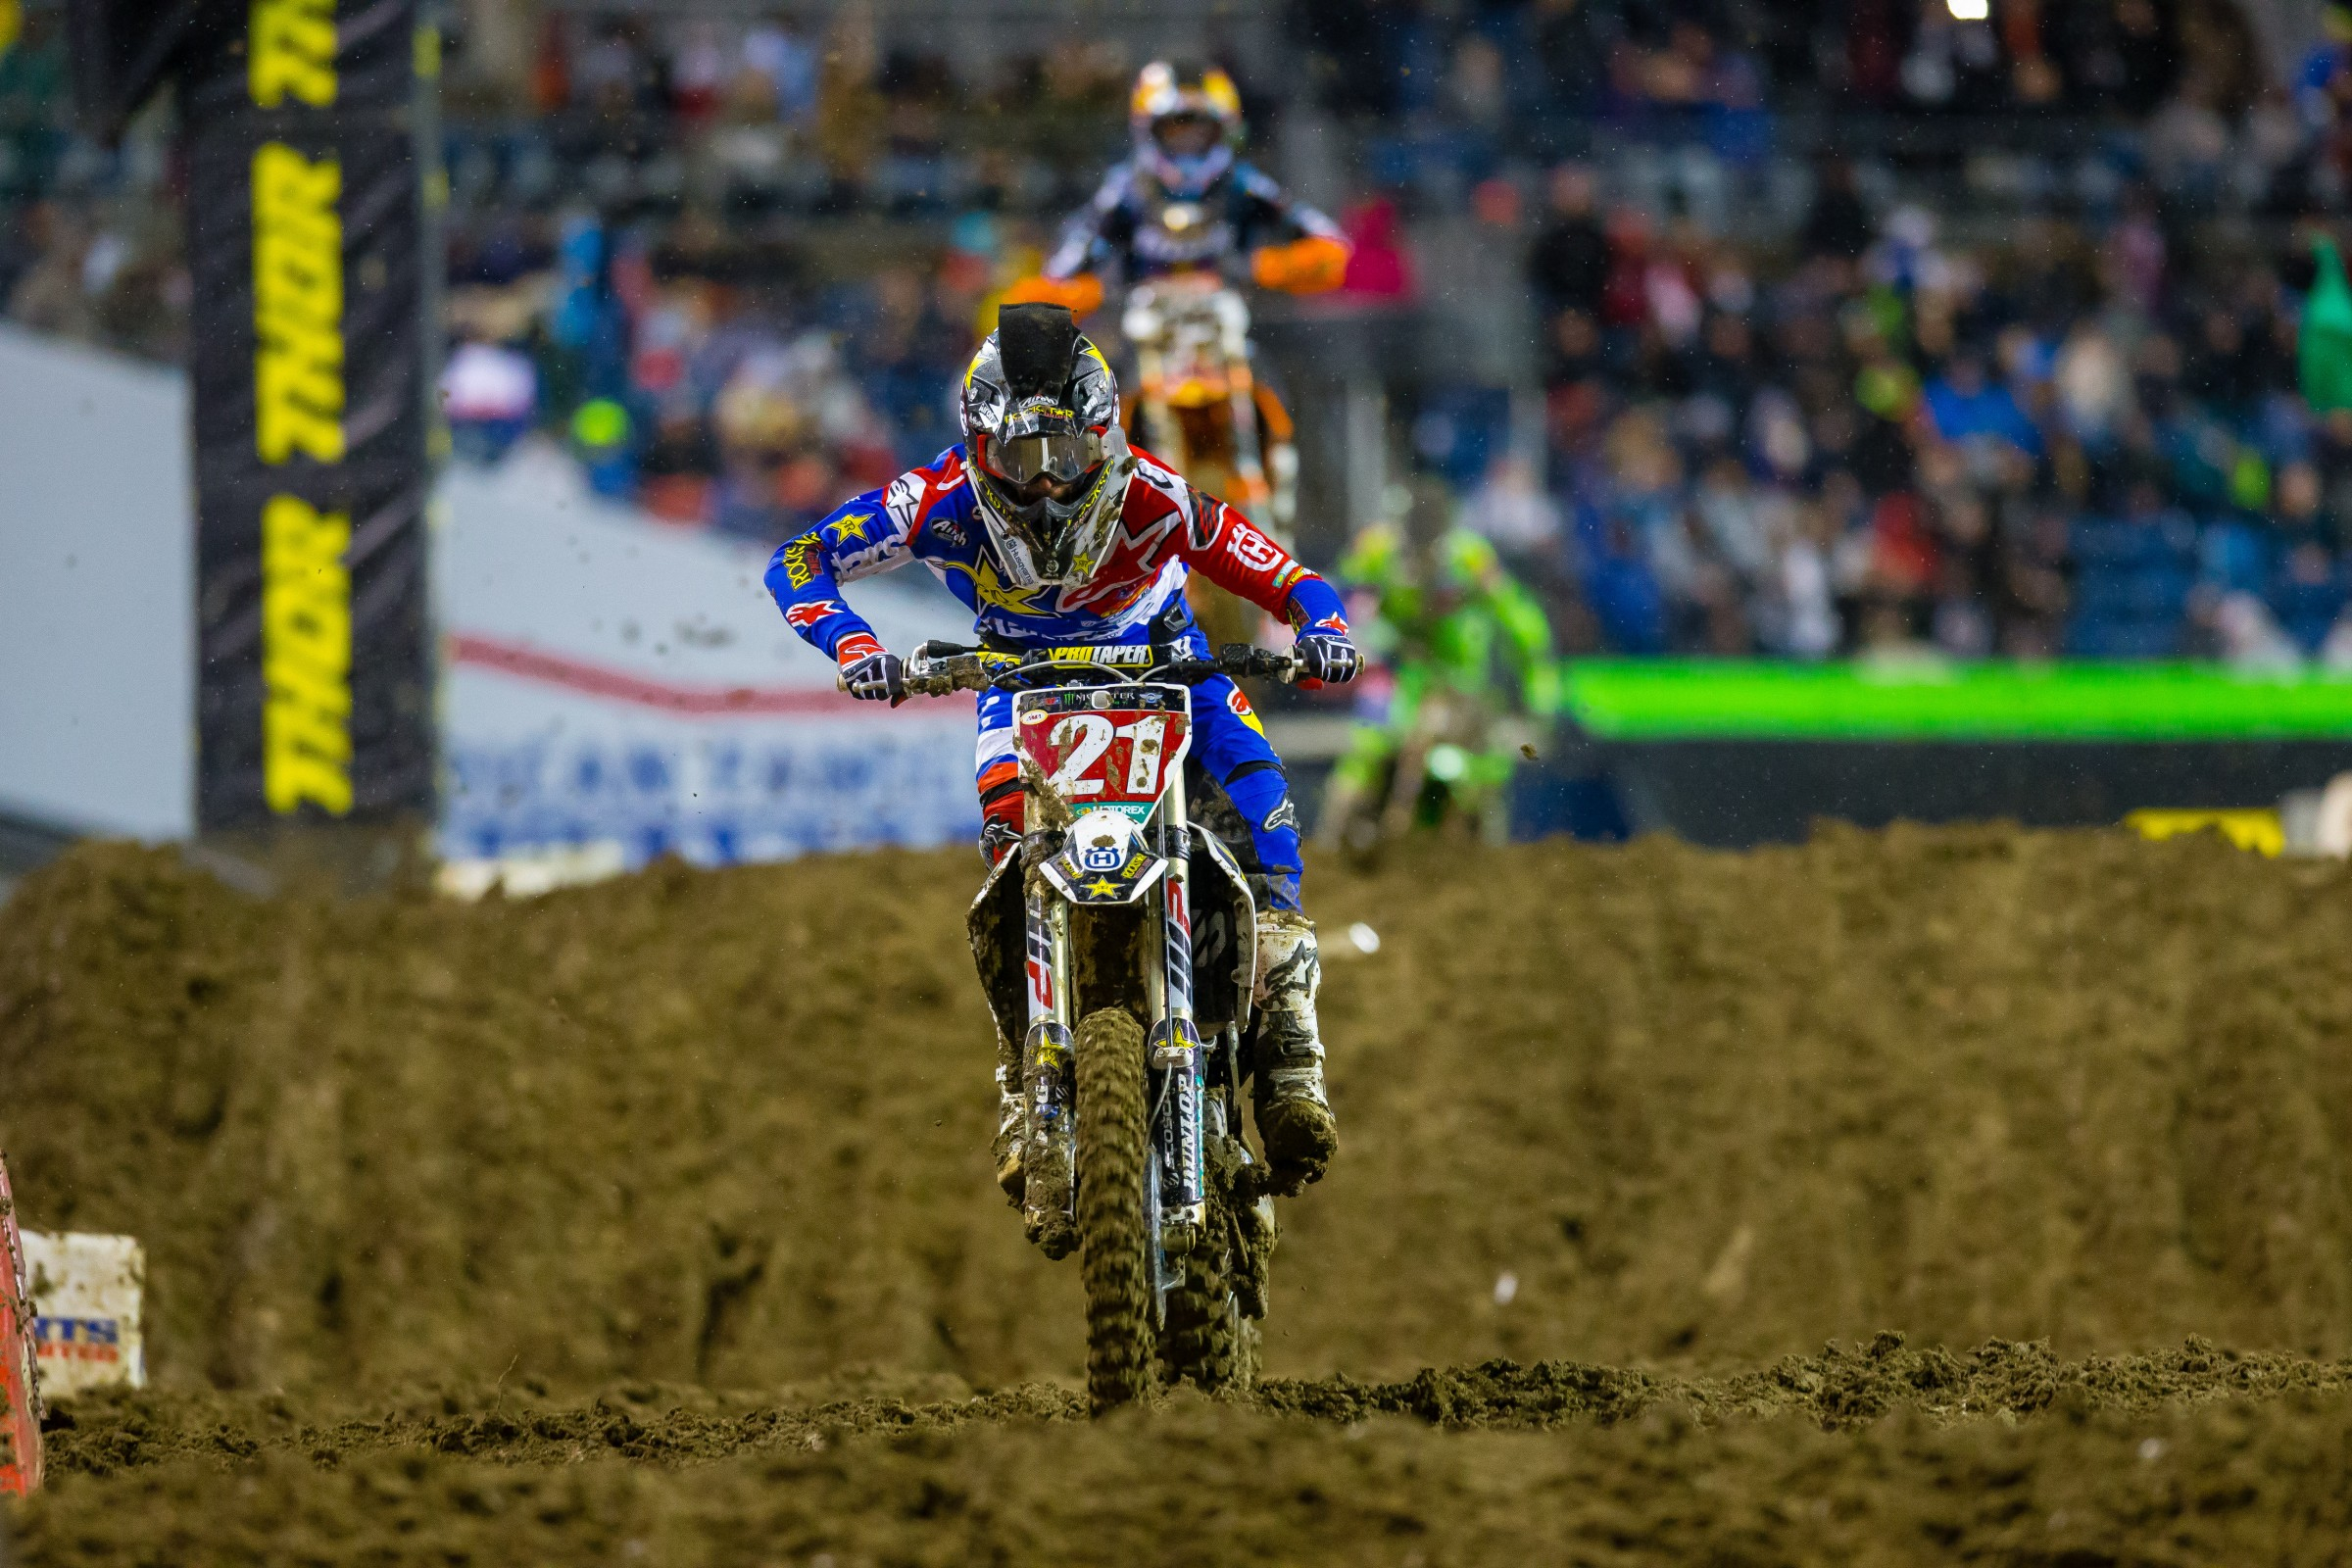 Anderson gained two points on Musquin with a second-place finish in Seattle, leaving him with a 37-point lead.